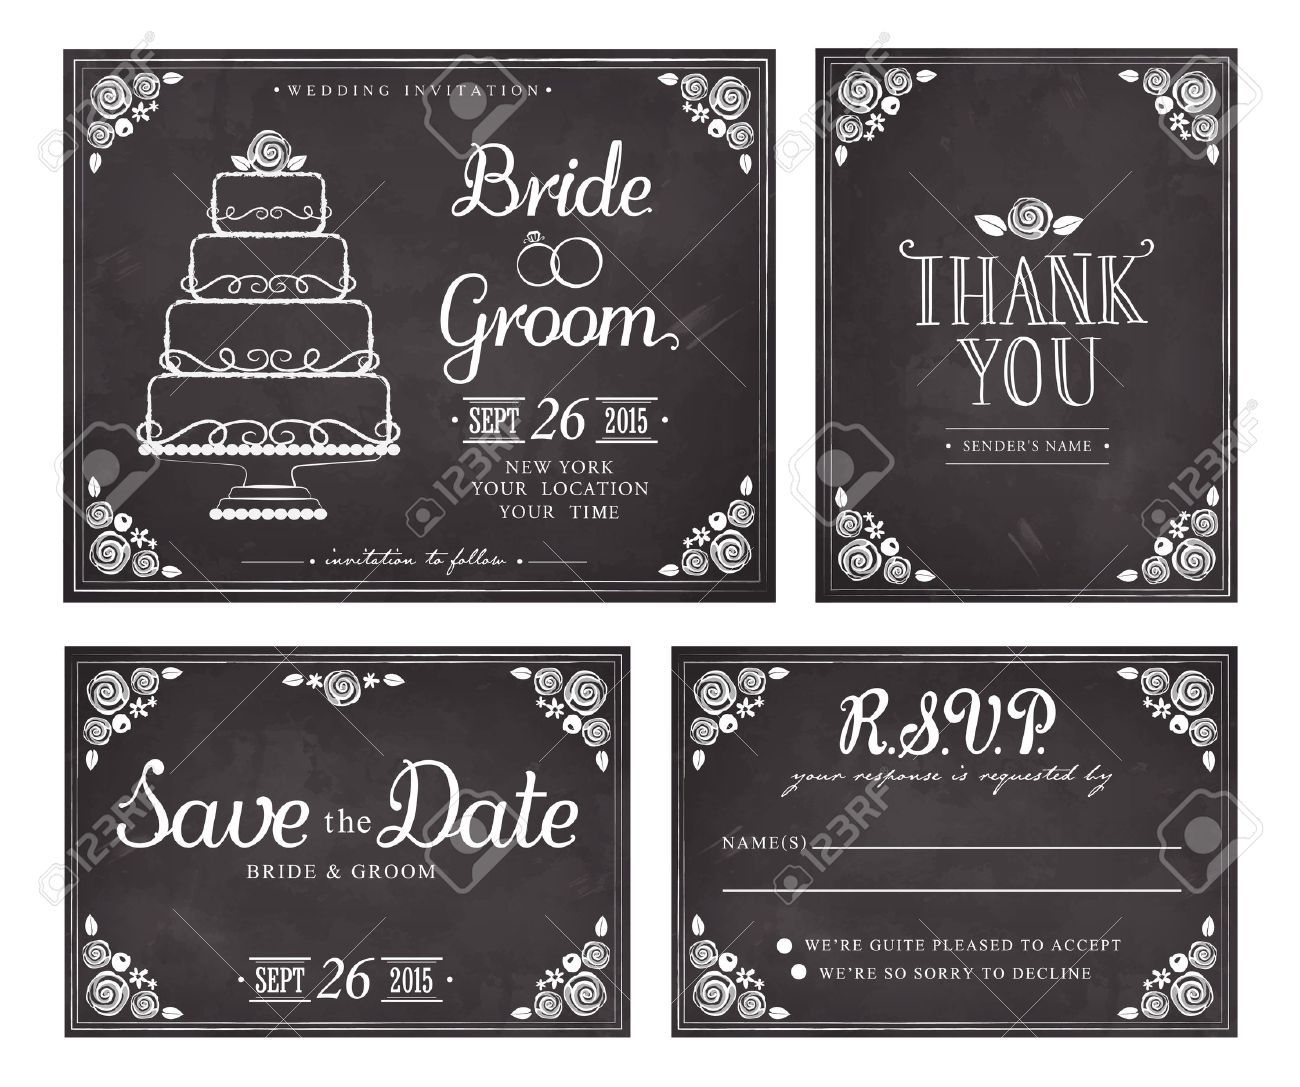 45363579 Set of wedding invitation vintage cards Save the date Thank you Vector response card Freehand drawin Stock Vector set of wedding invitation vintage cards save the date thank,Invitation And Response Card Set